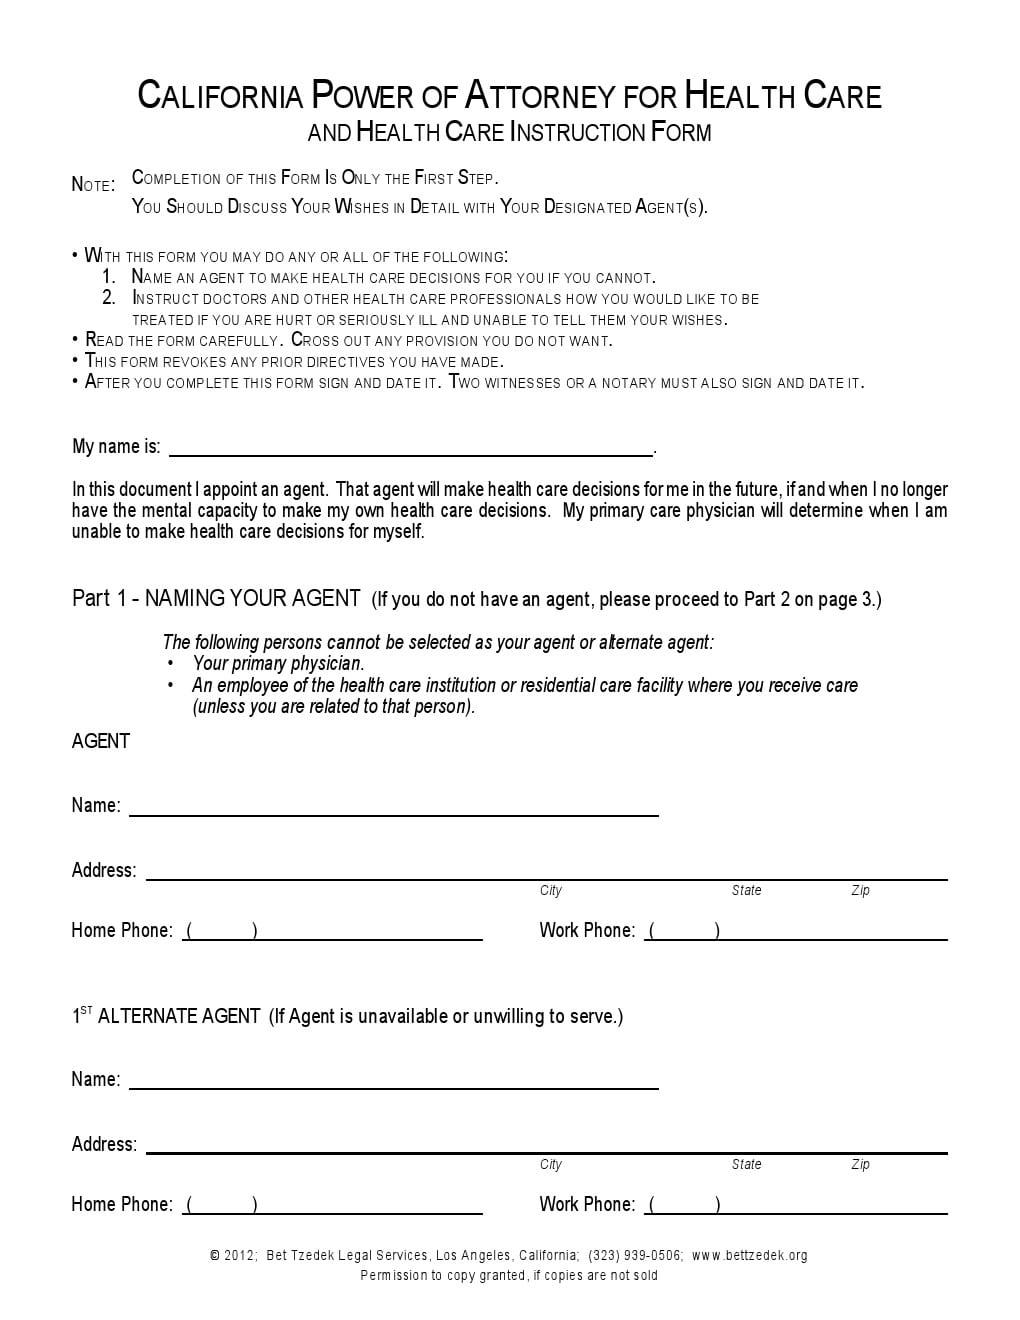 Free california durable power of attorney for health care form free california durable power of attorney for health care form adobe pdf word solutioingenieria Choice Image